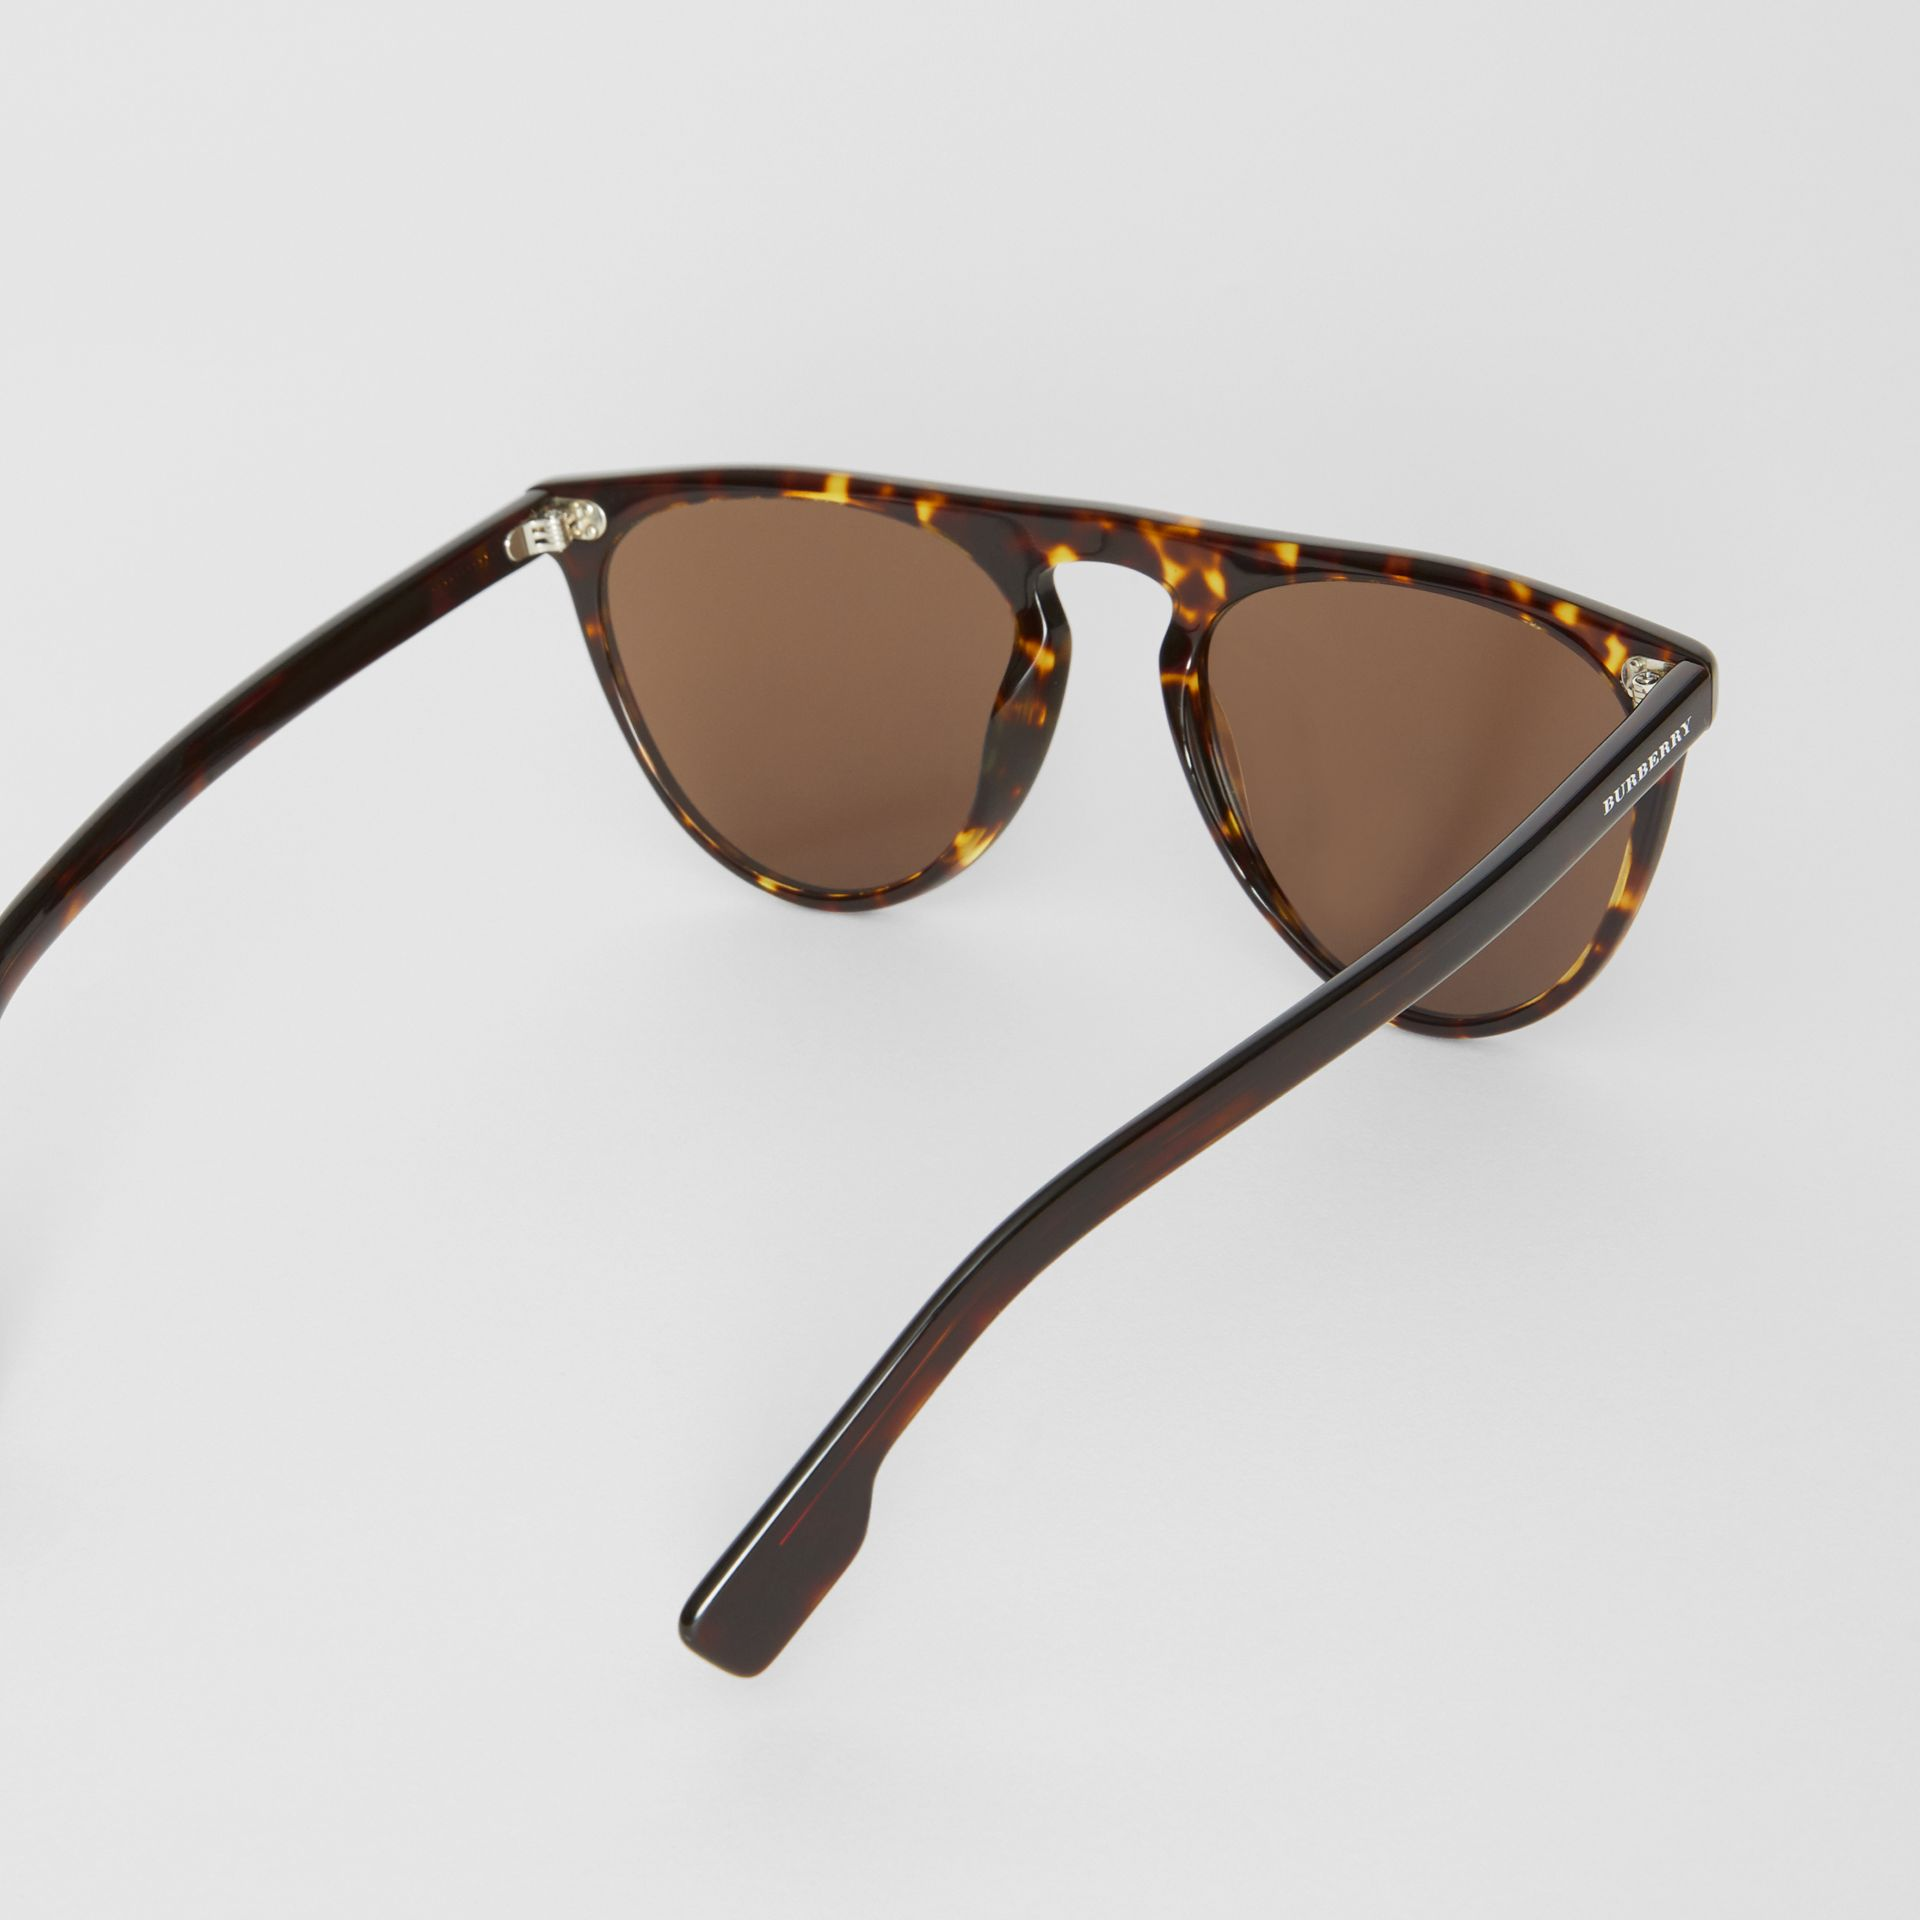 Keyhole D-shaped Sunglasses in Tortoise Shell - Men | Burberry Australia - gallery image 4